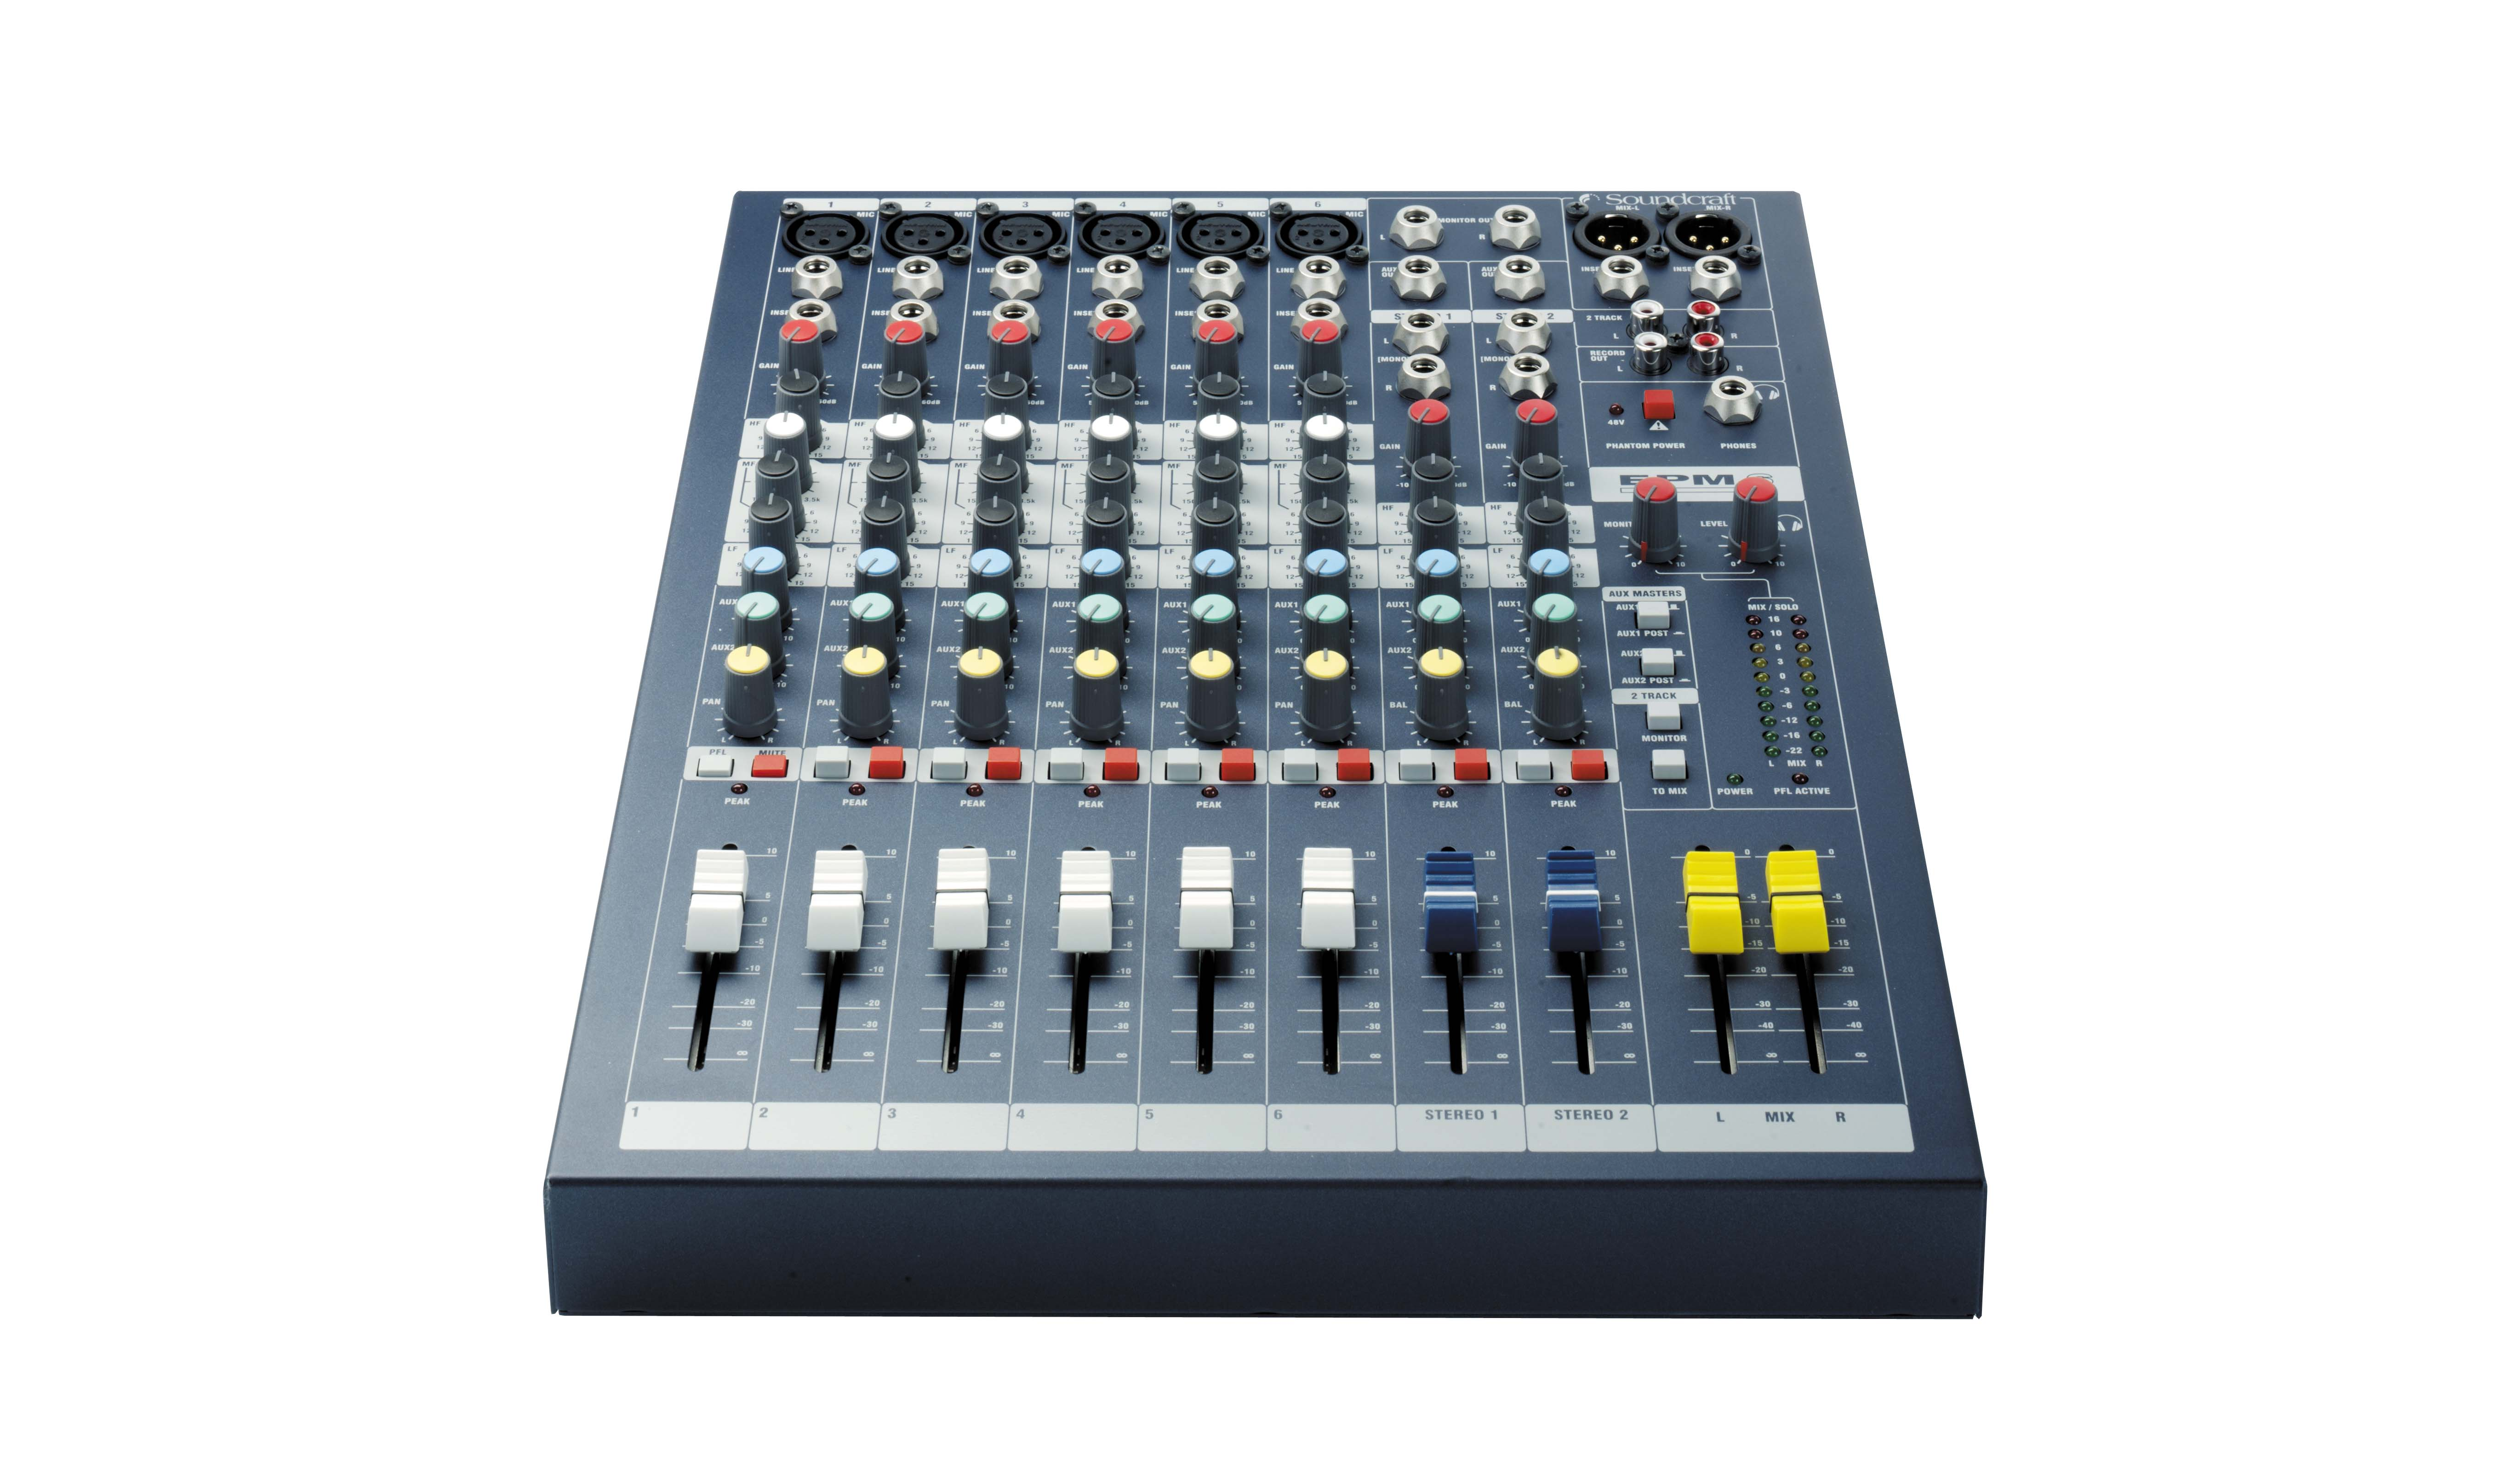 Epm6 Soundcraft Professional Audio Mixers Wiring Xlr Musical Theatre